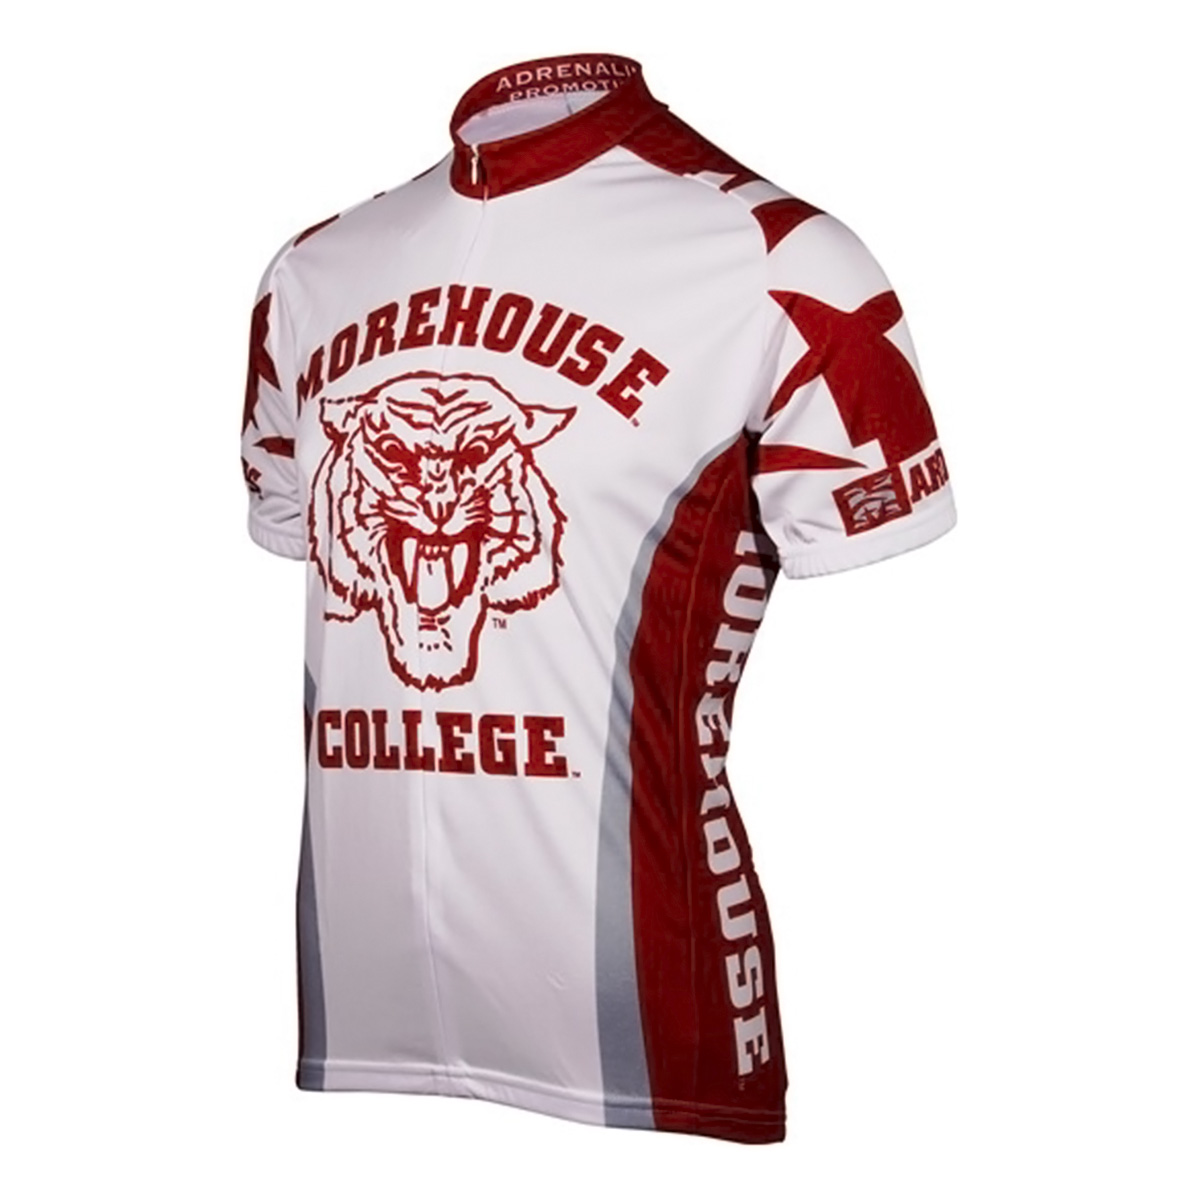 Adrenaline Promotions Morehouse College Maroon Tiger Cycling Jersey